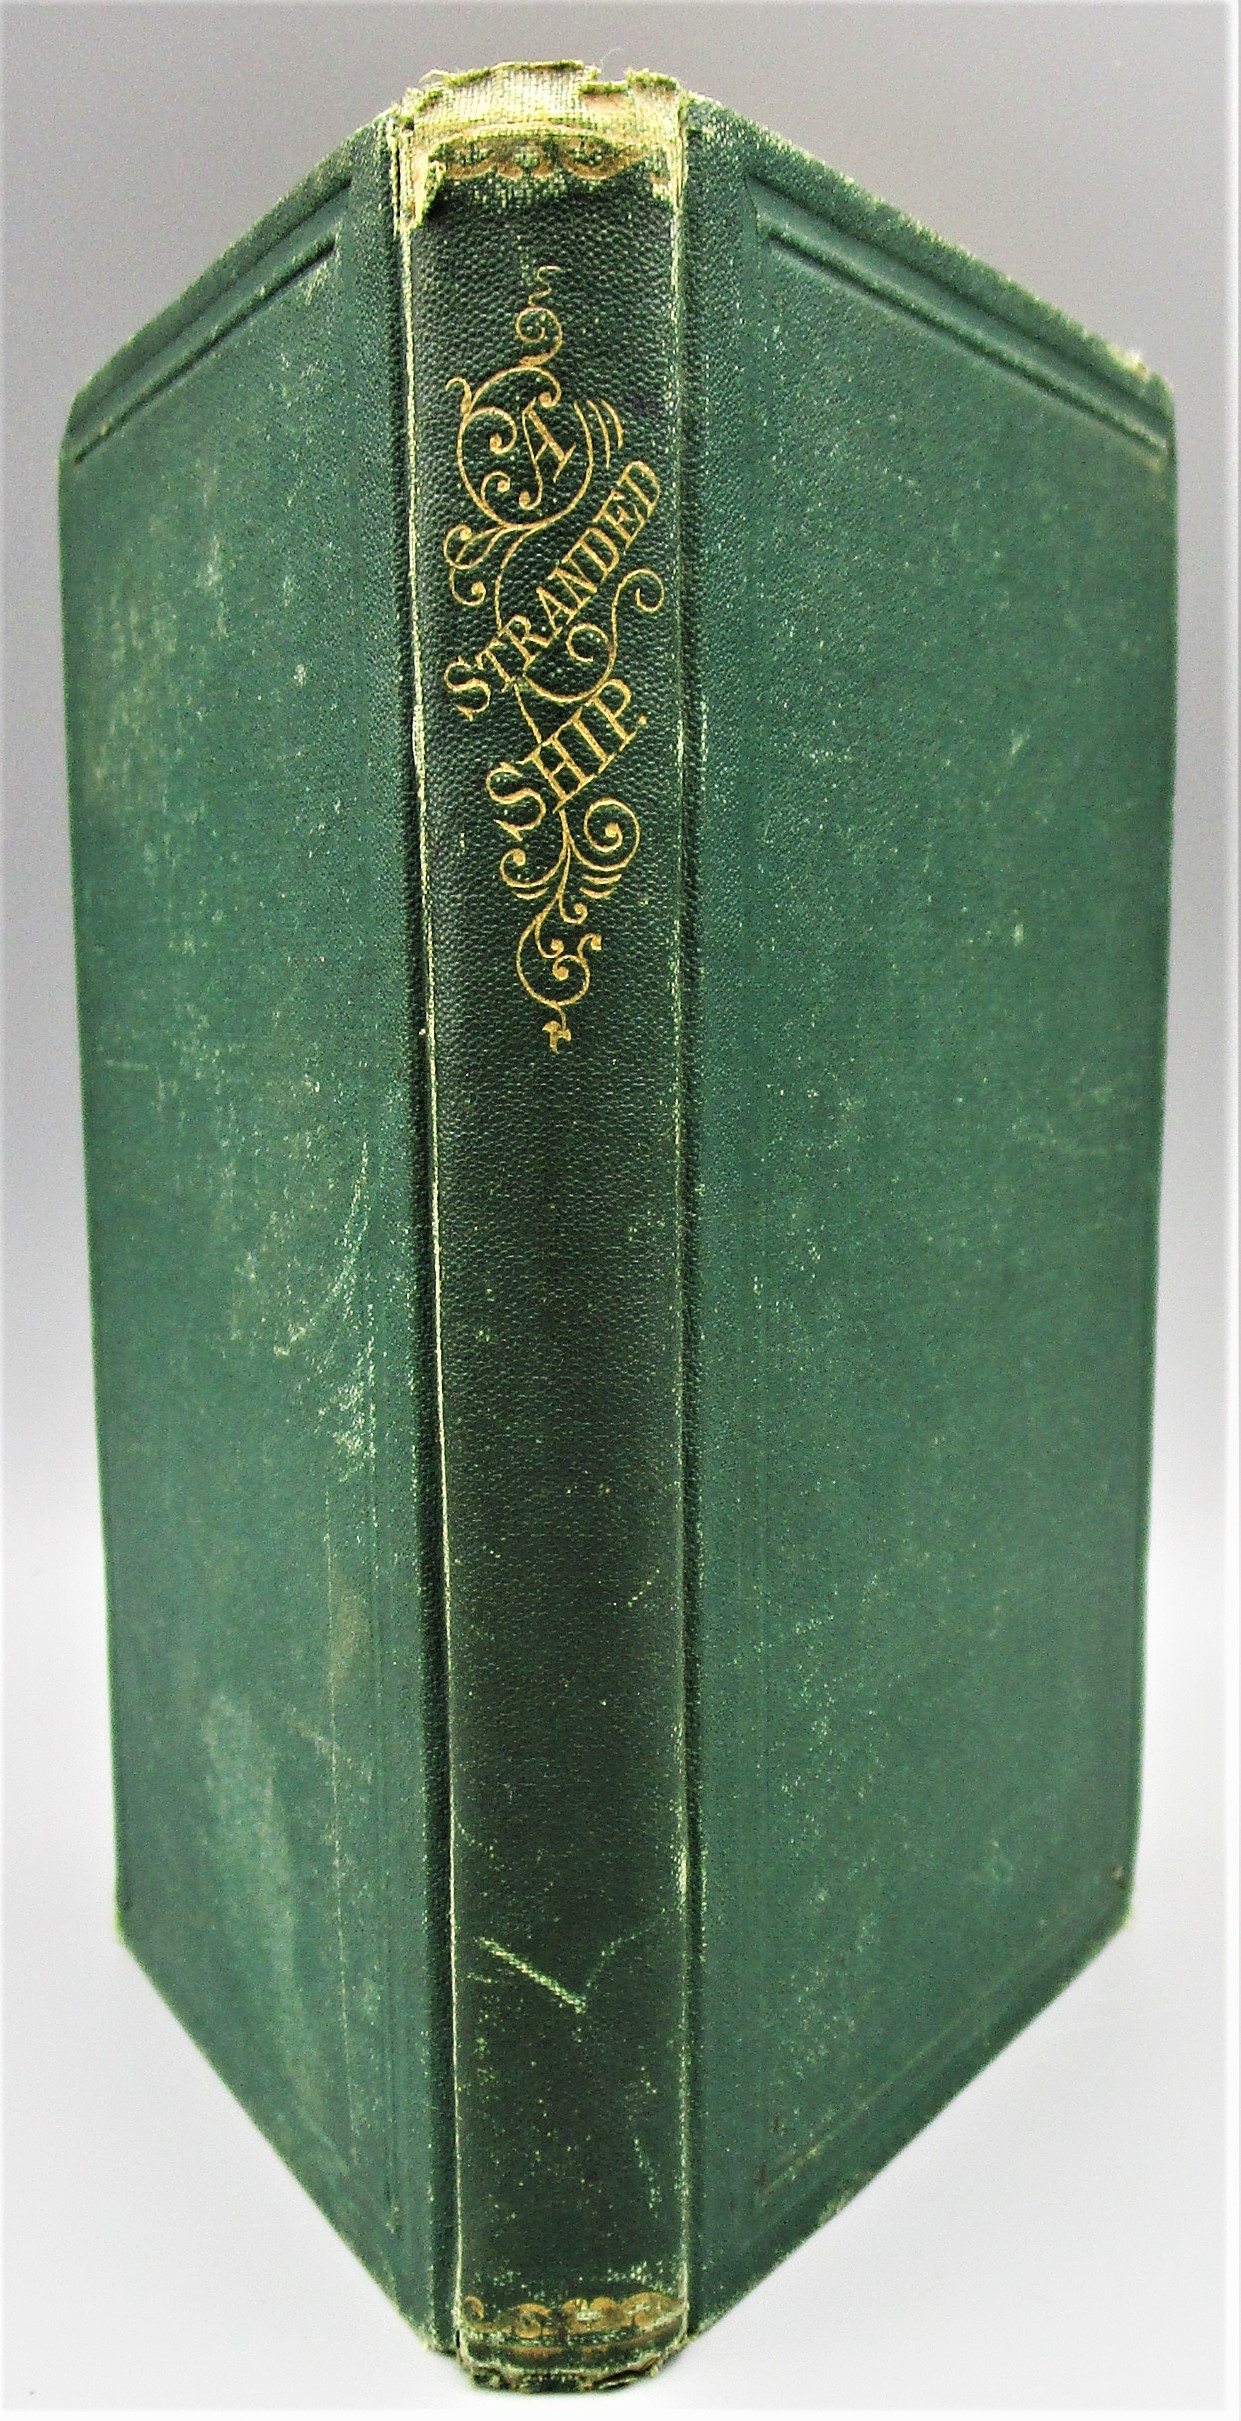 A STRANDED SHIP: A STORY OF SEA AND SHORE, by L. Clarke Davis - 1869 [1st Ed] *ephemera*